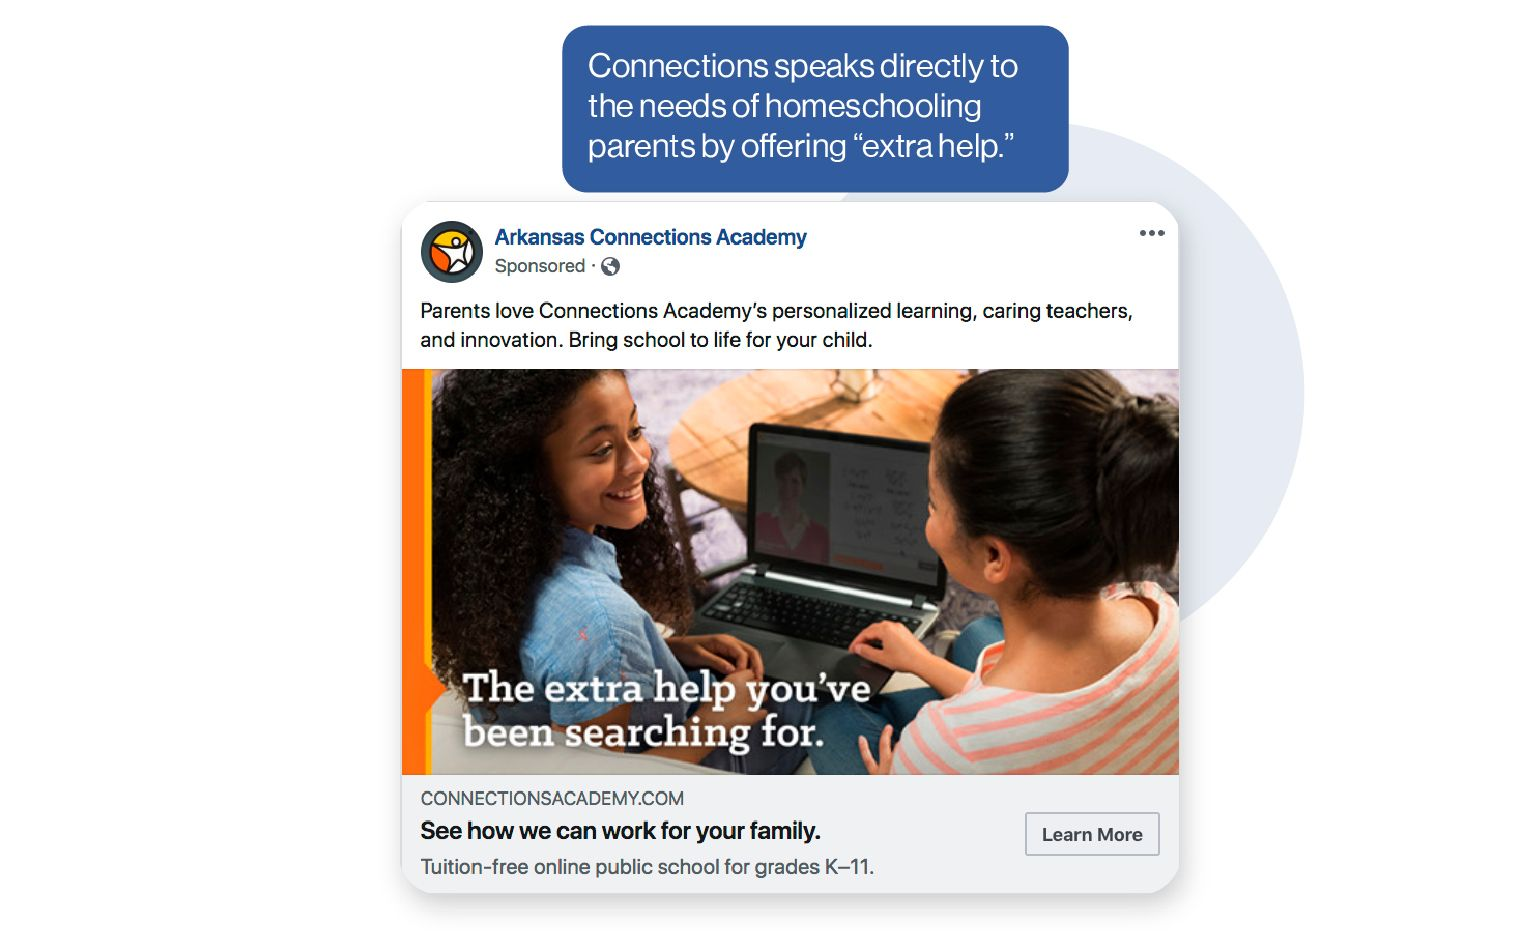 Image: A Connections Academy ad example showing that Connections speaks directly to the needs of homeschooling students by offering